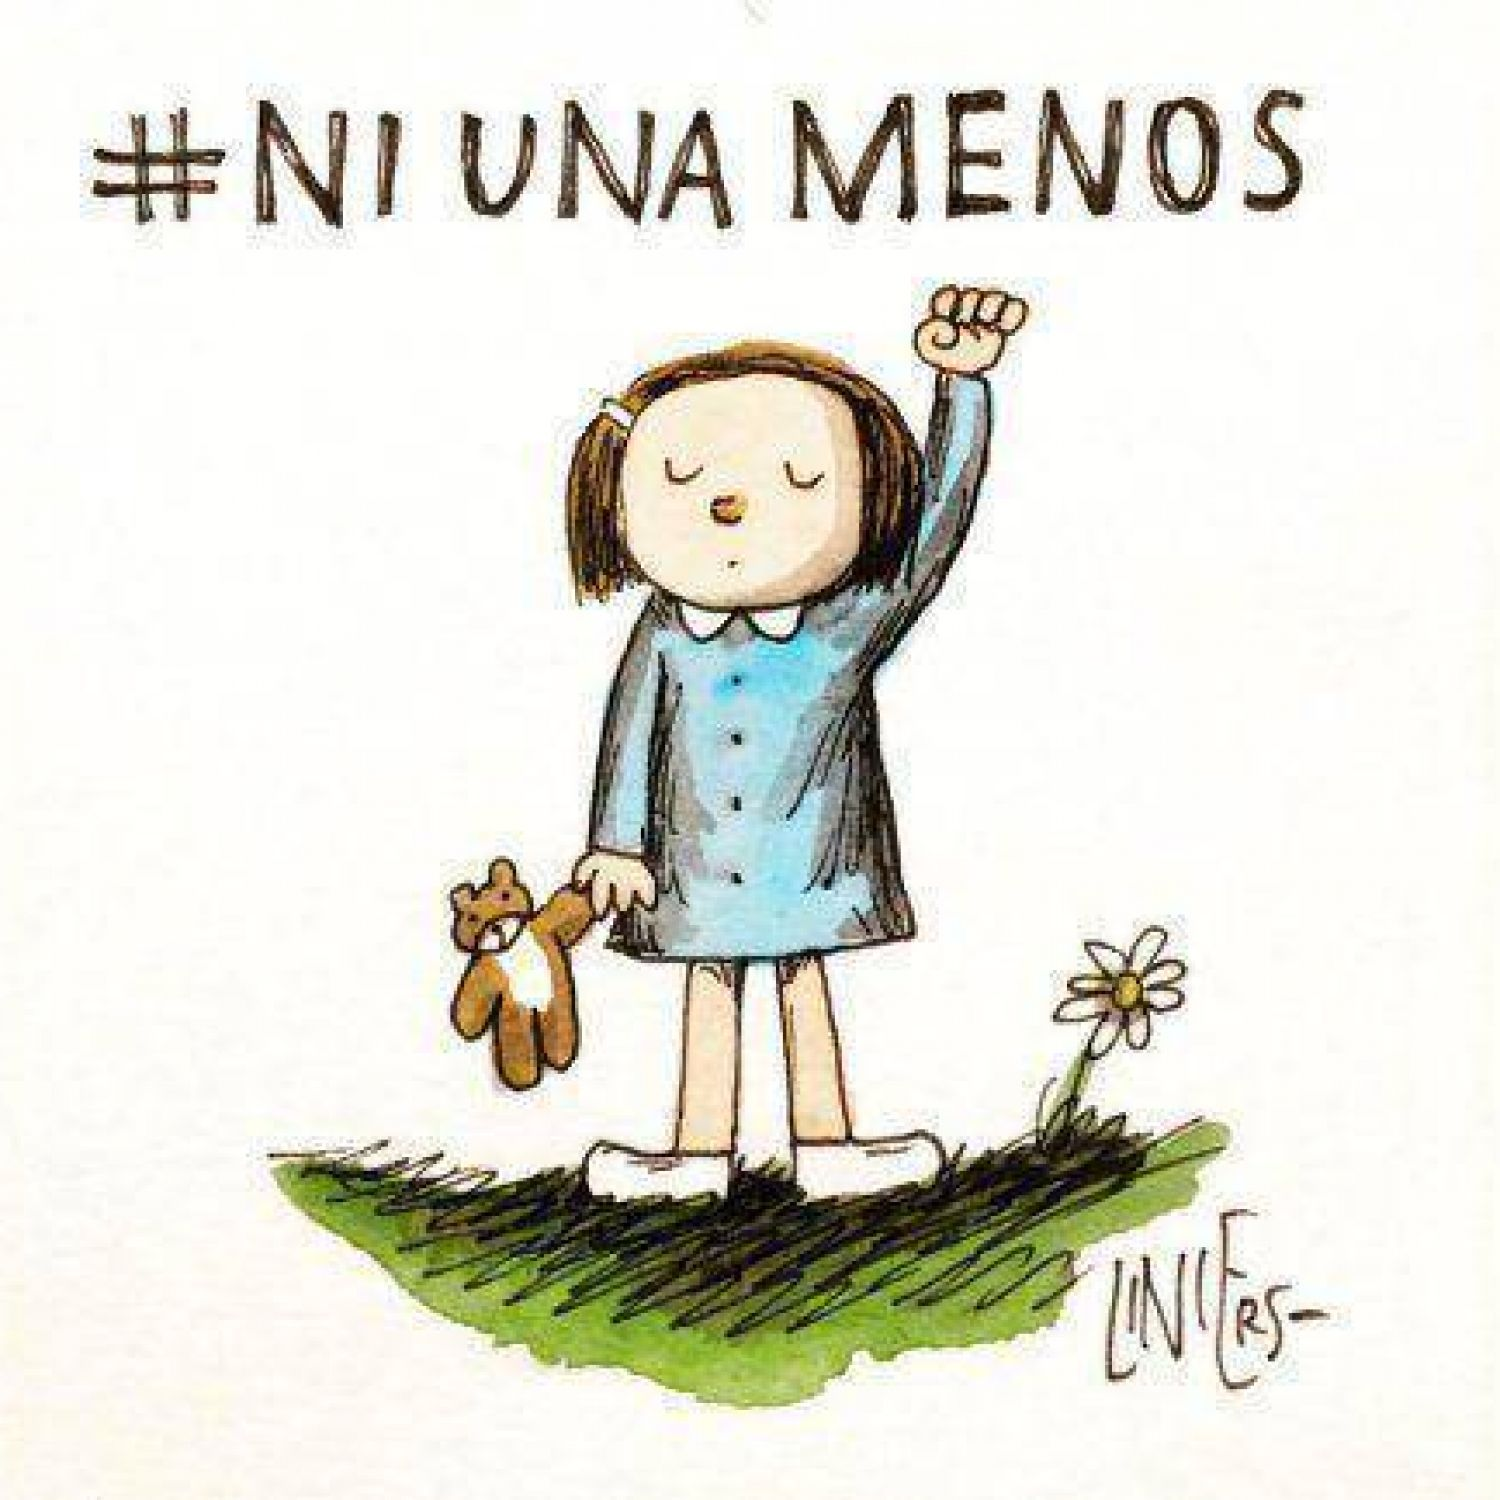 ©Liniers